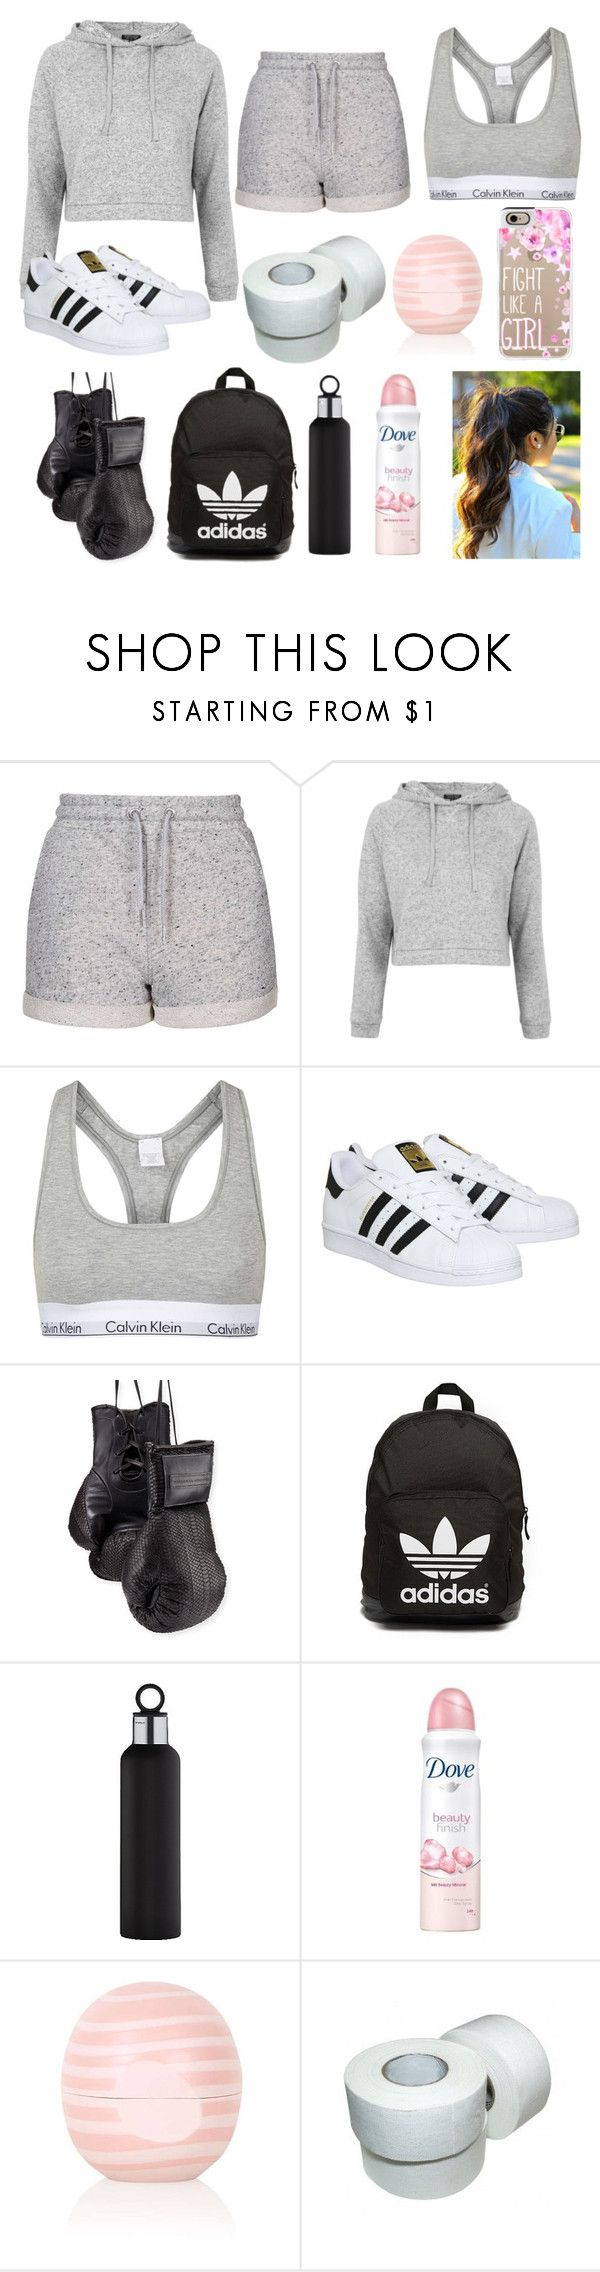 """Boxing"" by iamthequeenofwonderland ❤ liked on Polyvore featuring Topshop, adidas, Elisabeth Weinstock, adidas Originals, blomus, Dove, Casetify, outfit and Boxing"